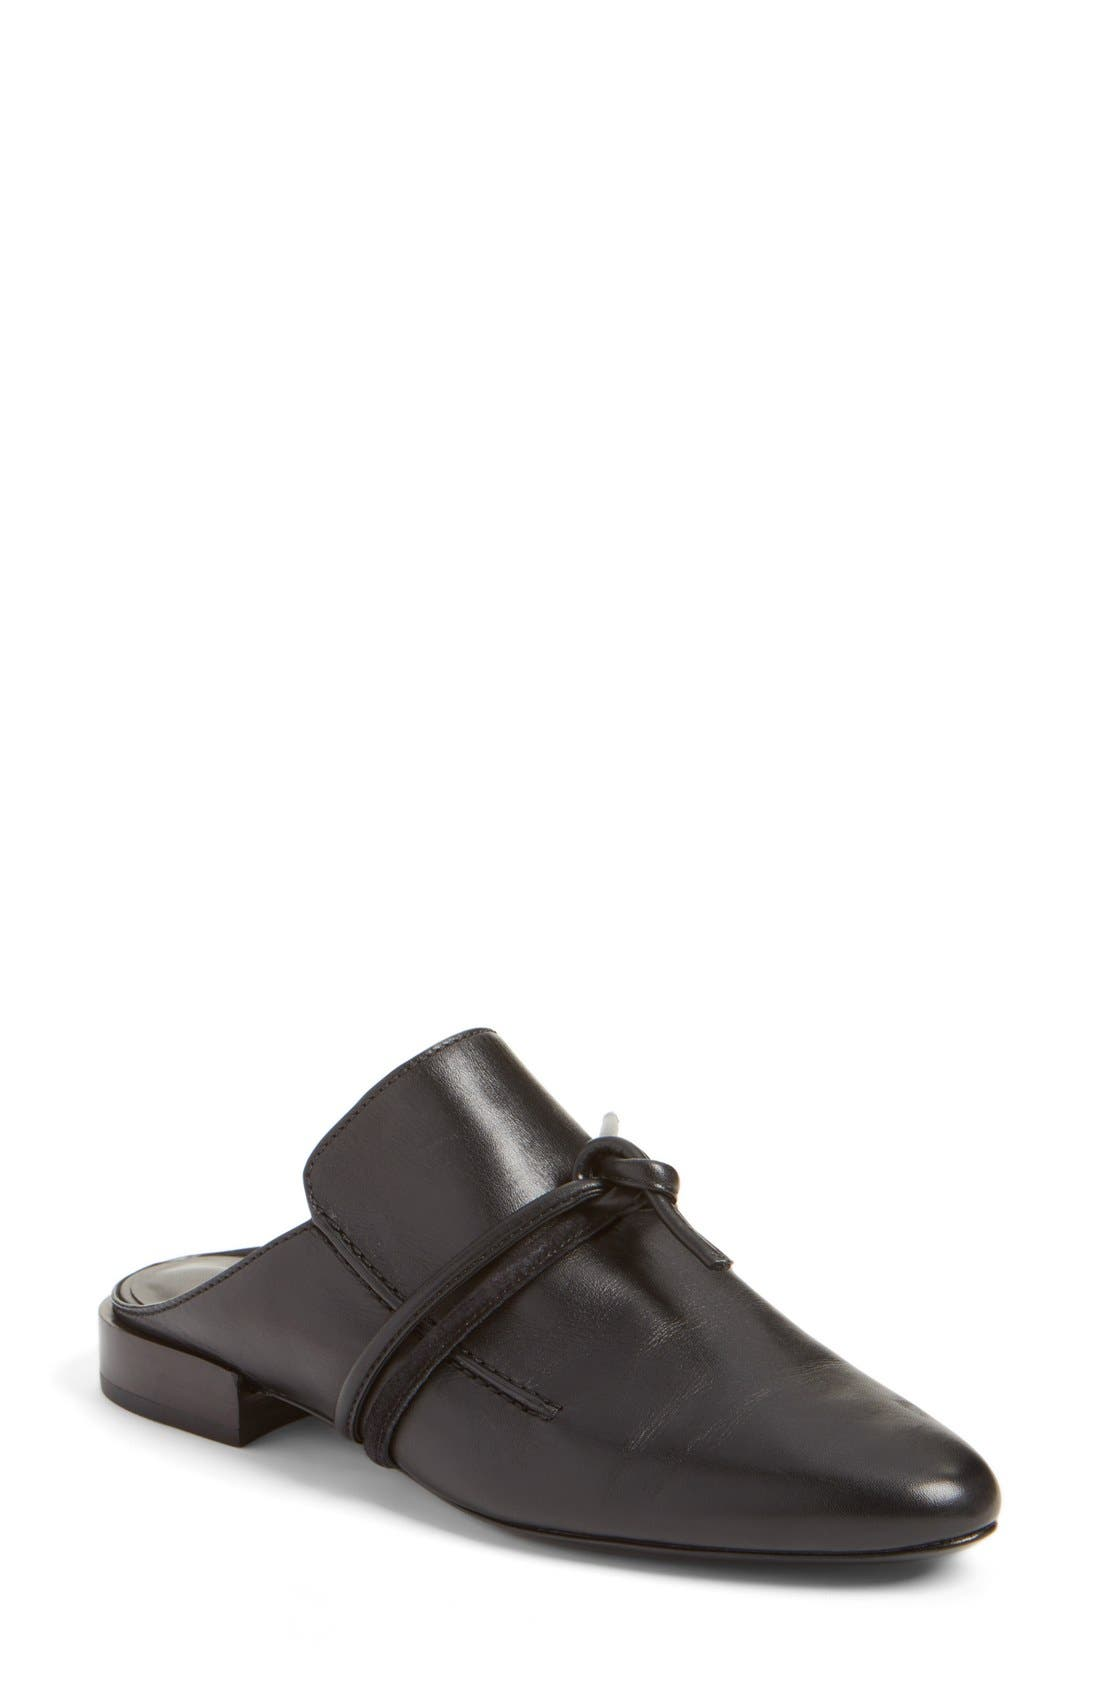 Main Image - 3.1 Phillip Lim 'Louie' Mule Loafer (Women)